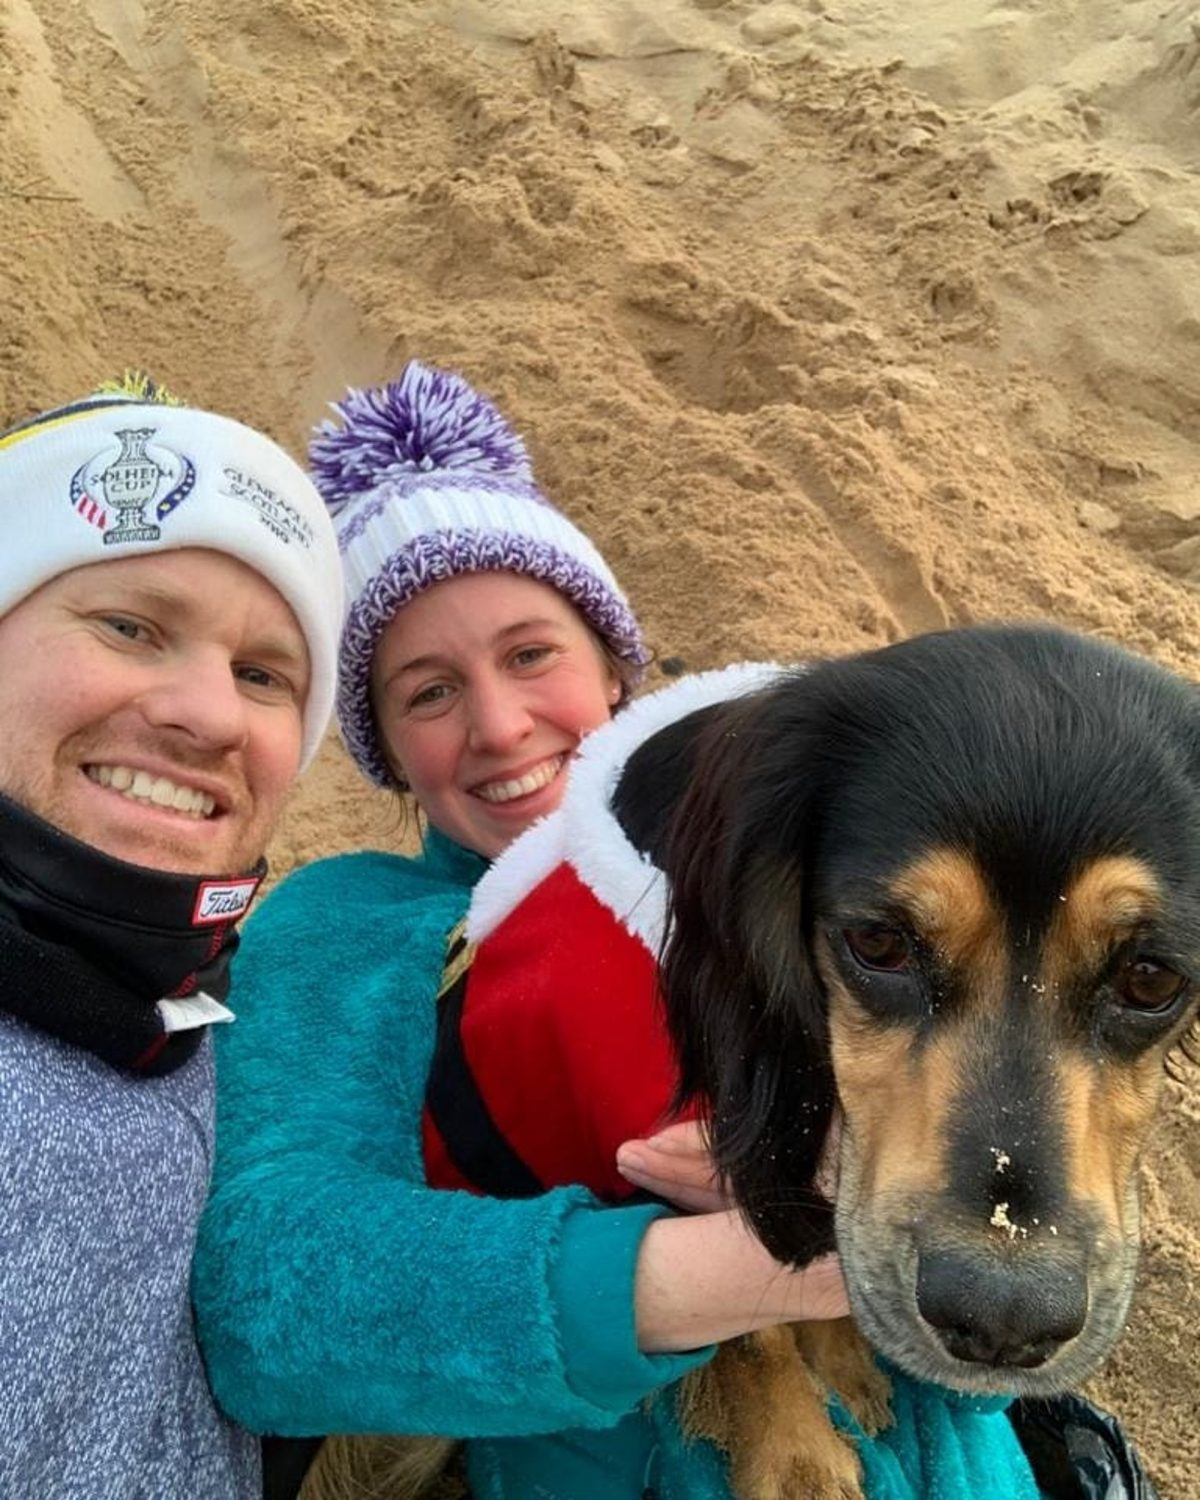 Hannah with her partner Euan and their dog Poppy.